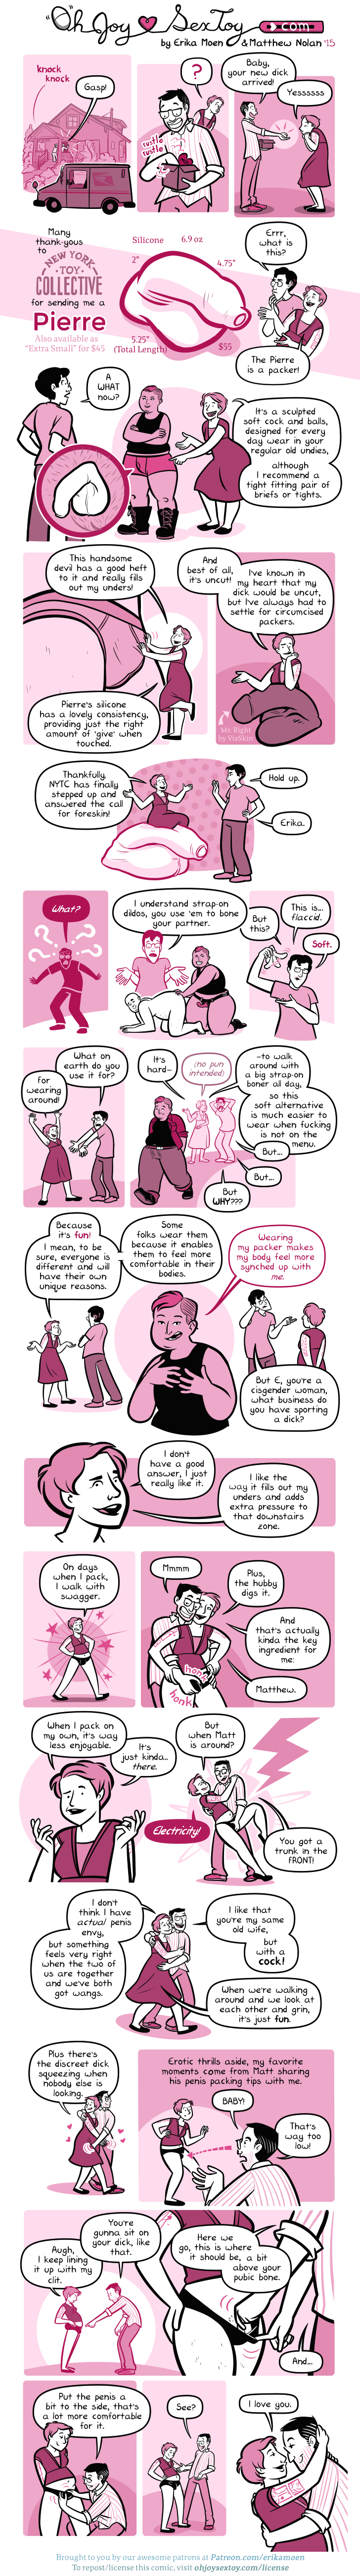 "A comic describing how artist Erika Moen sometimes wears a toy penis under her clothes. She likes to ""pack\"" in this way because she finds it fun and sexy."